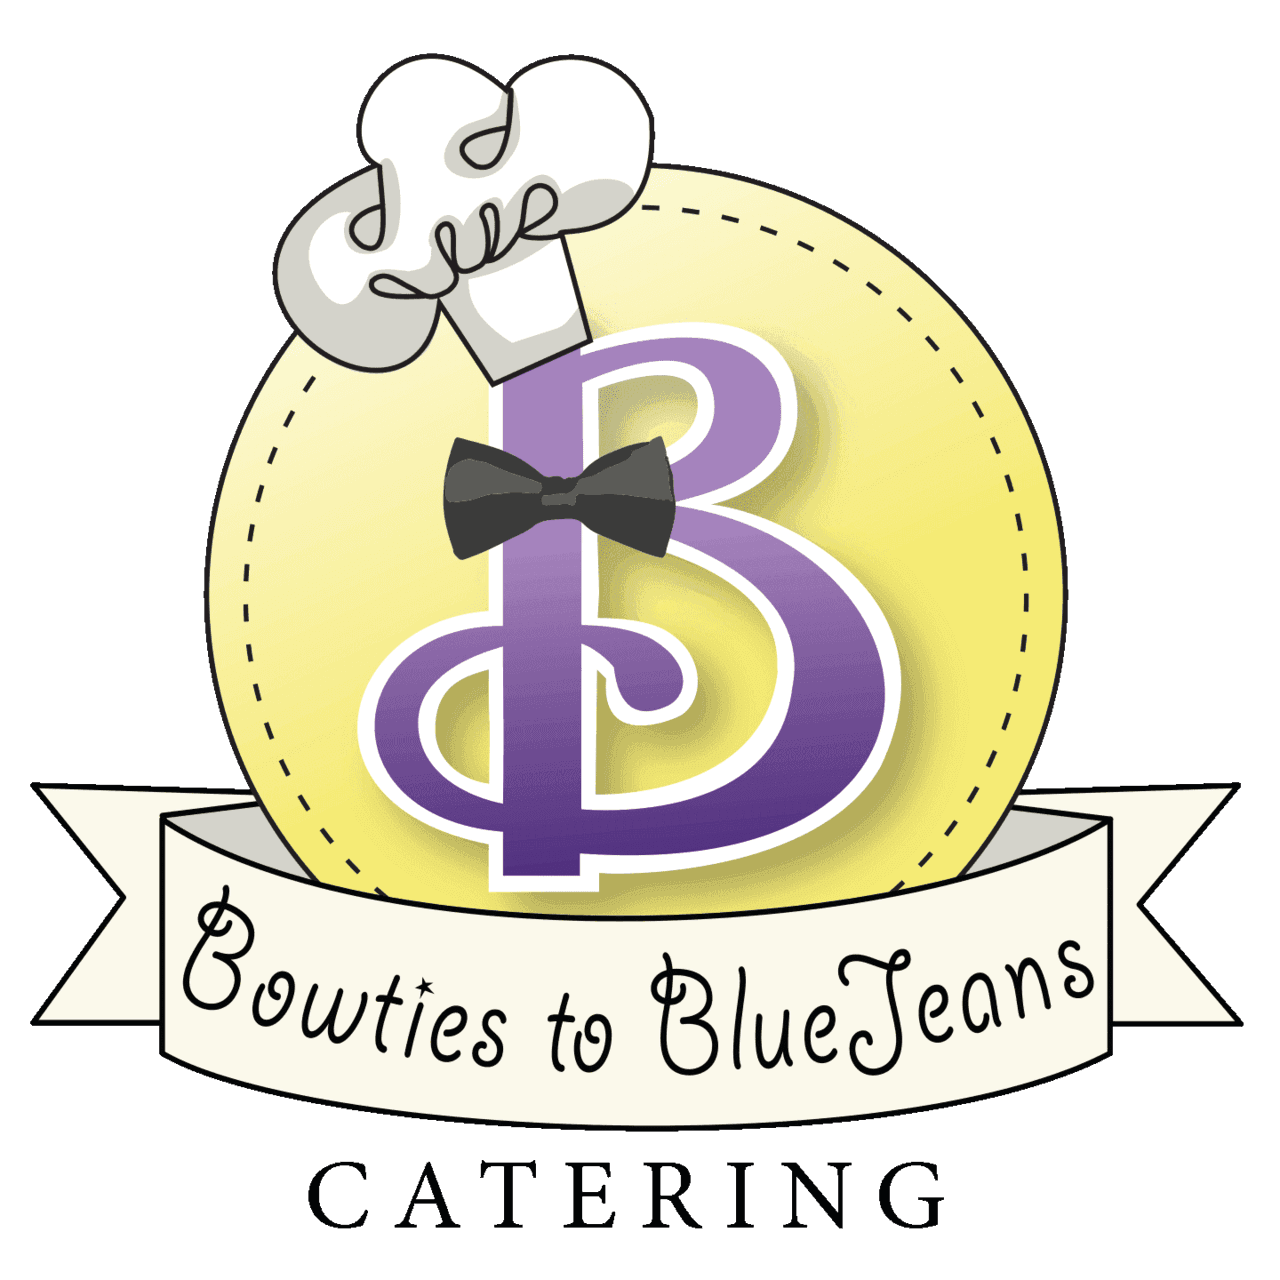 Ham clipart entree. Bowties to blue jeans